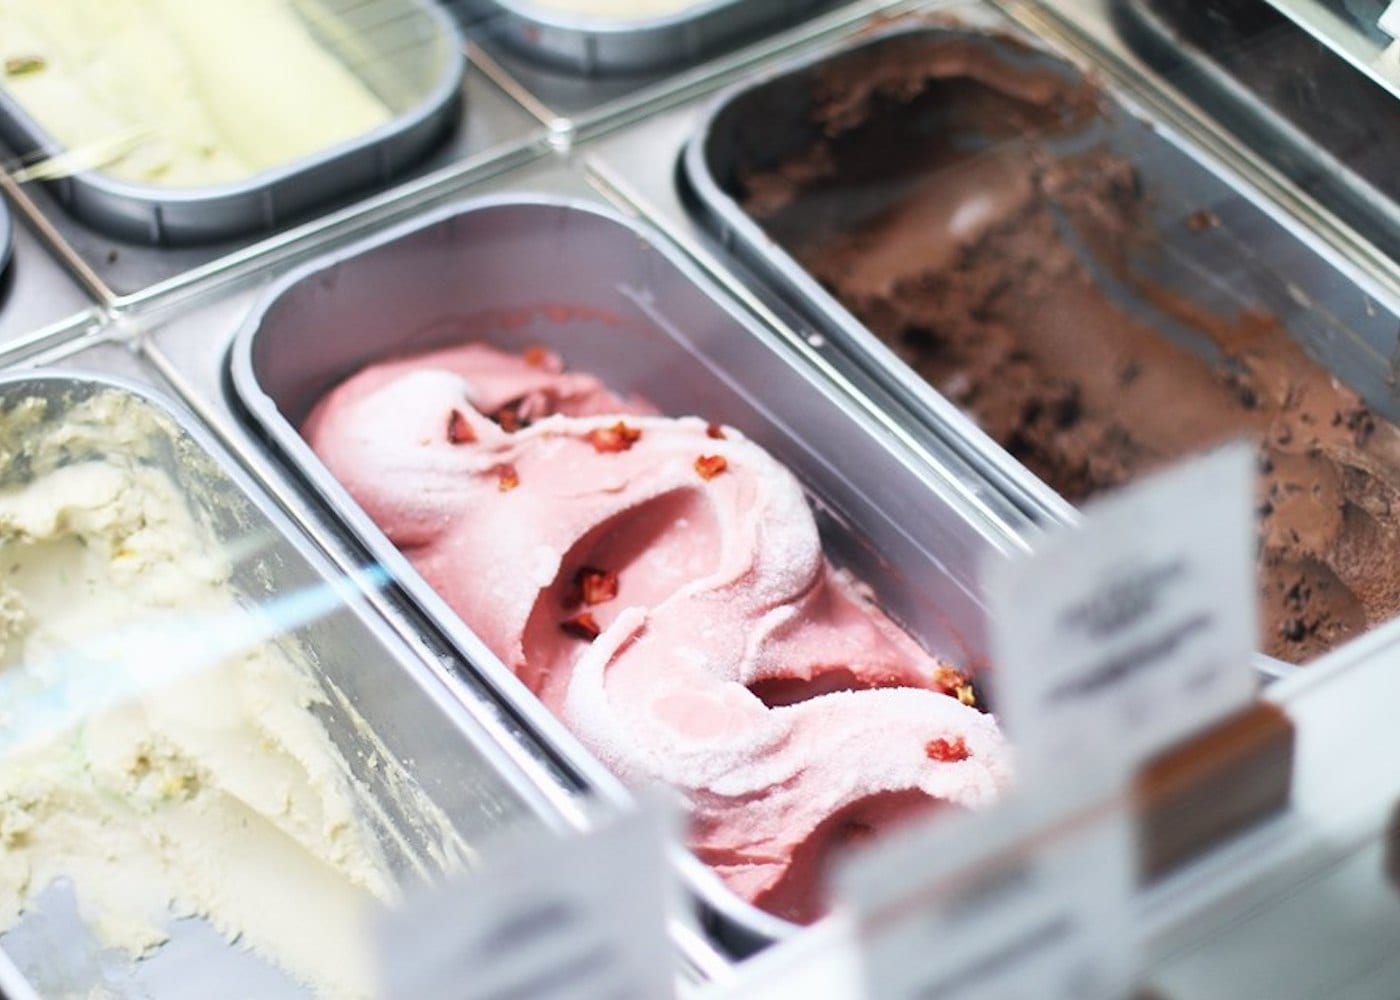 Best places in Singapore for ice cream, gelato, waffles and popsicles: Kind Kones in Tanglin Mall